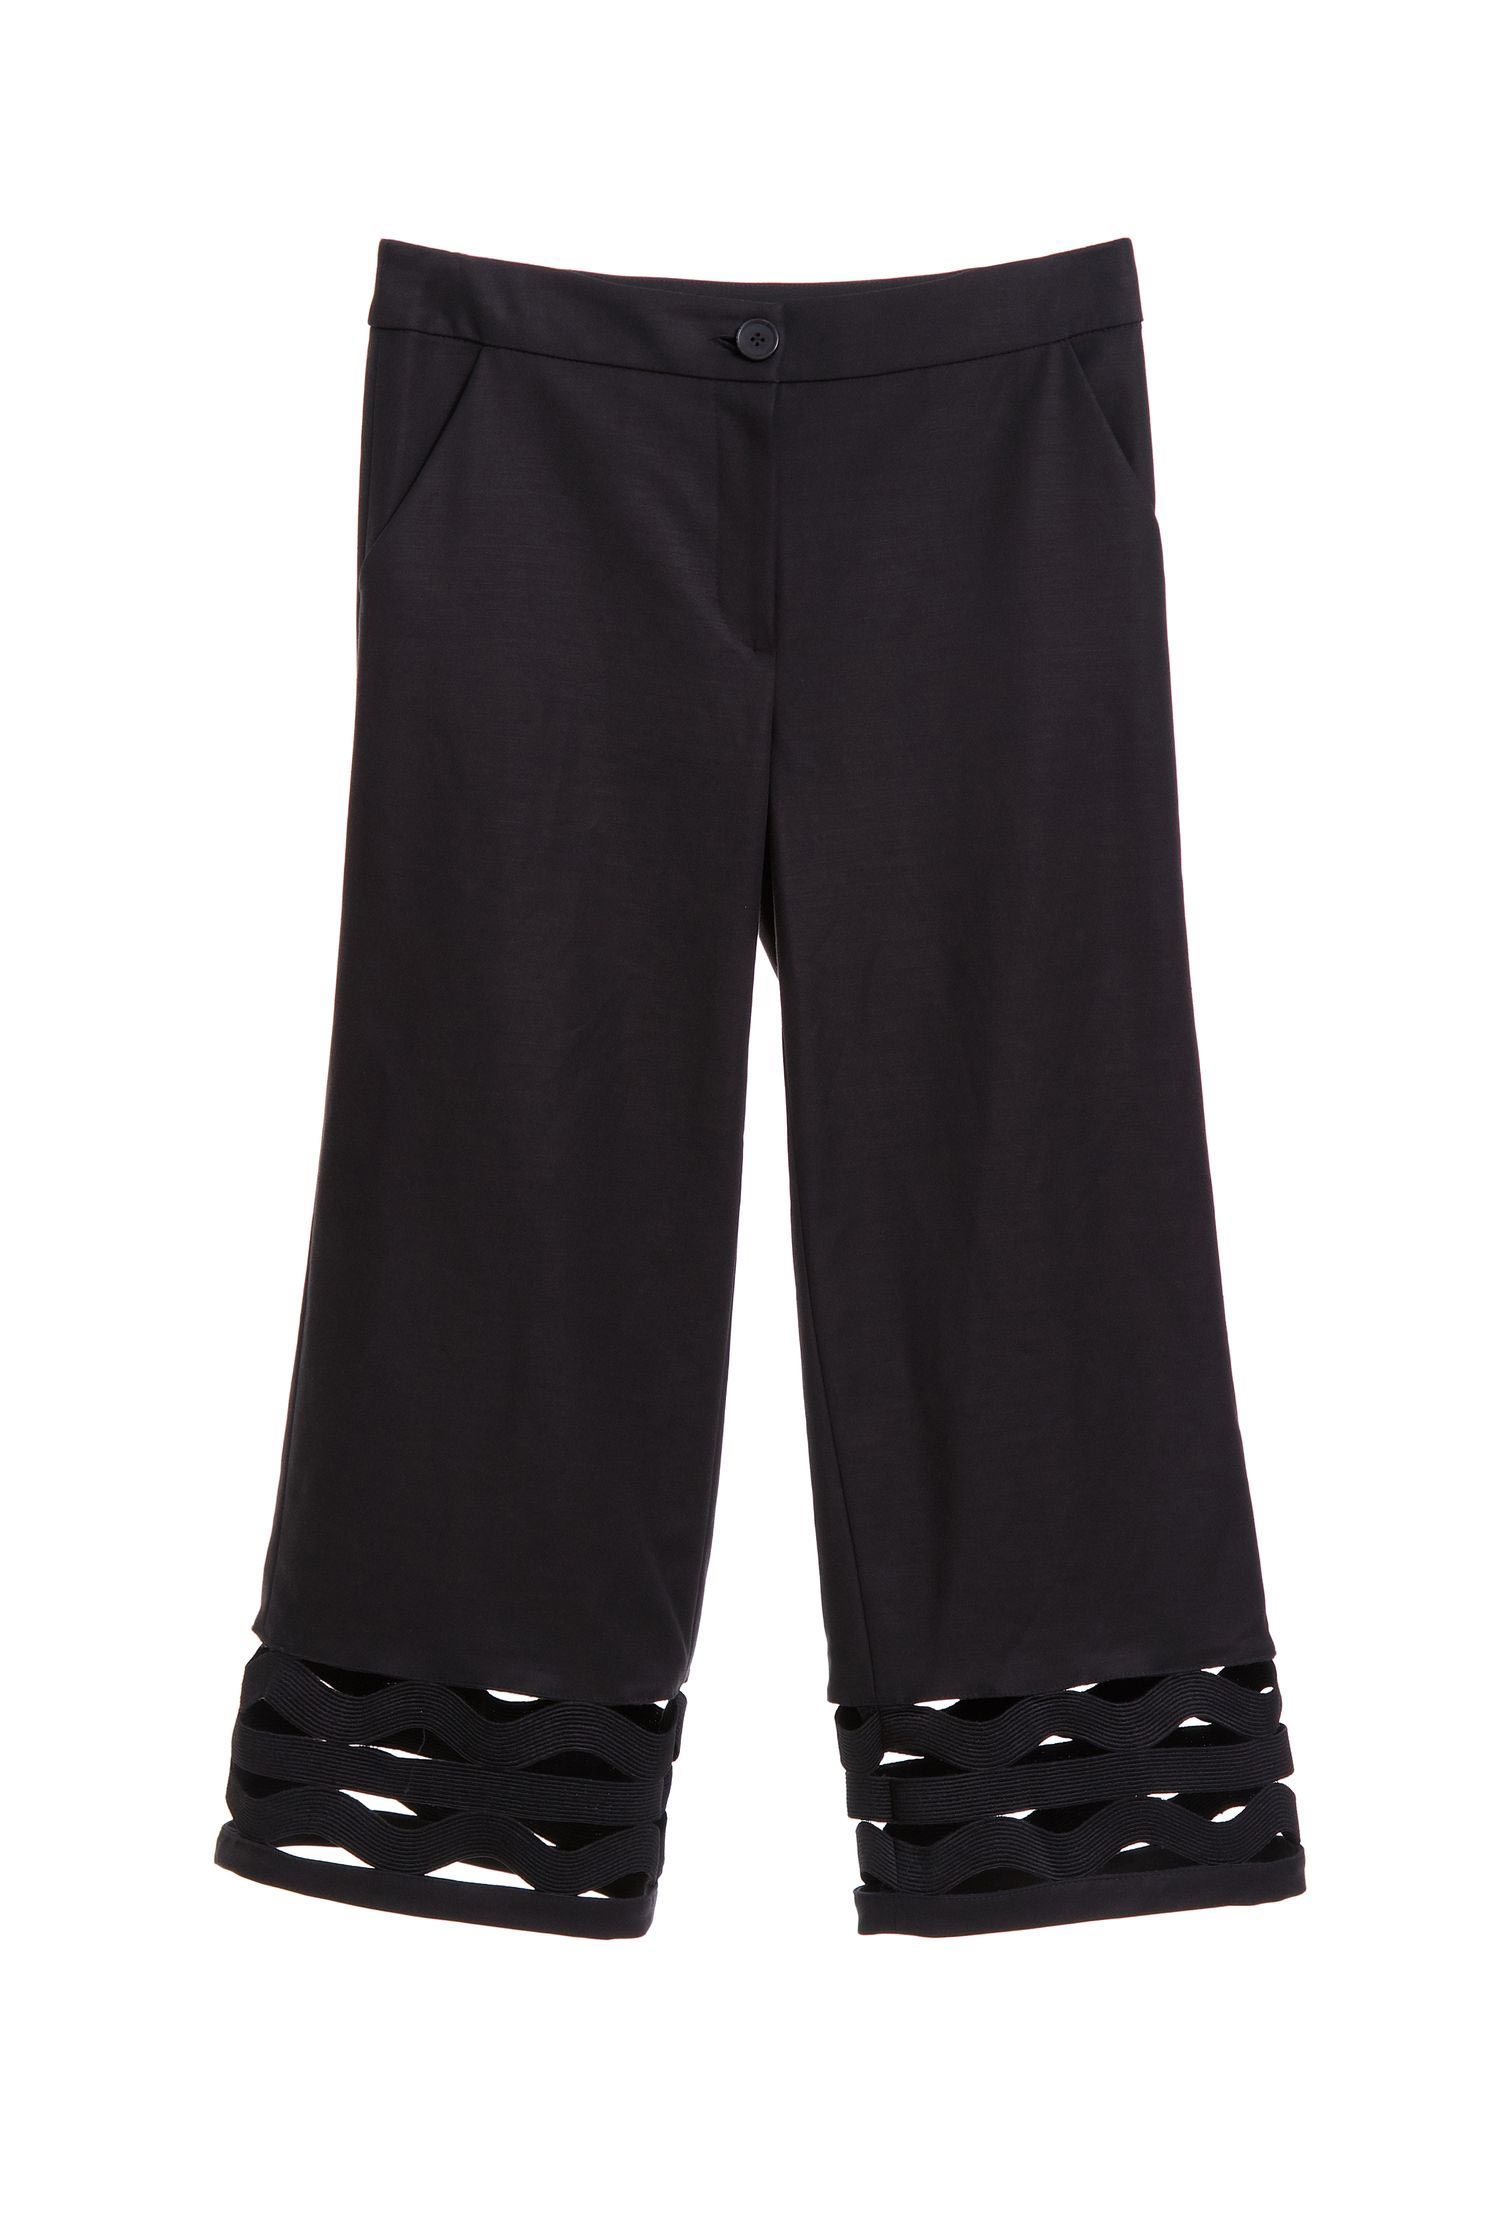 Hollow out pants